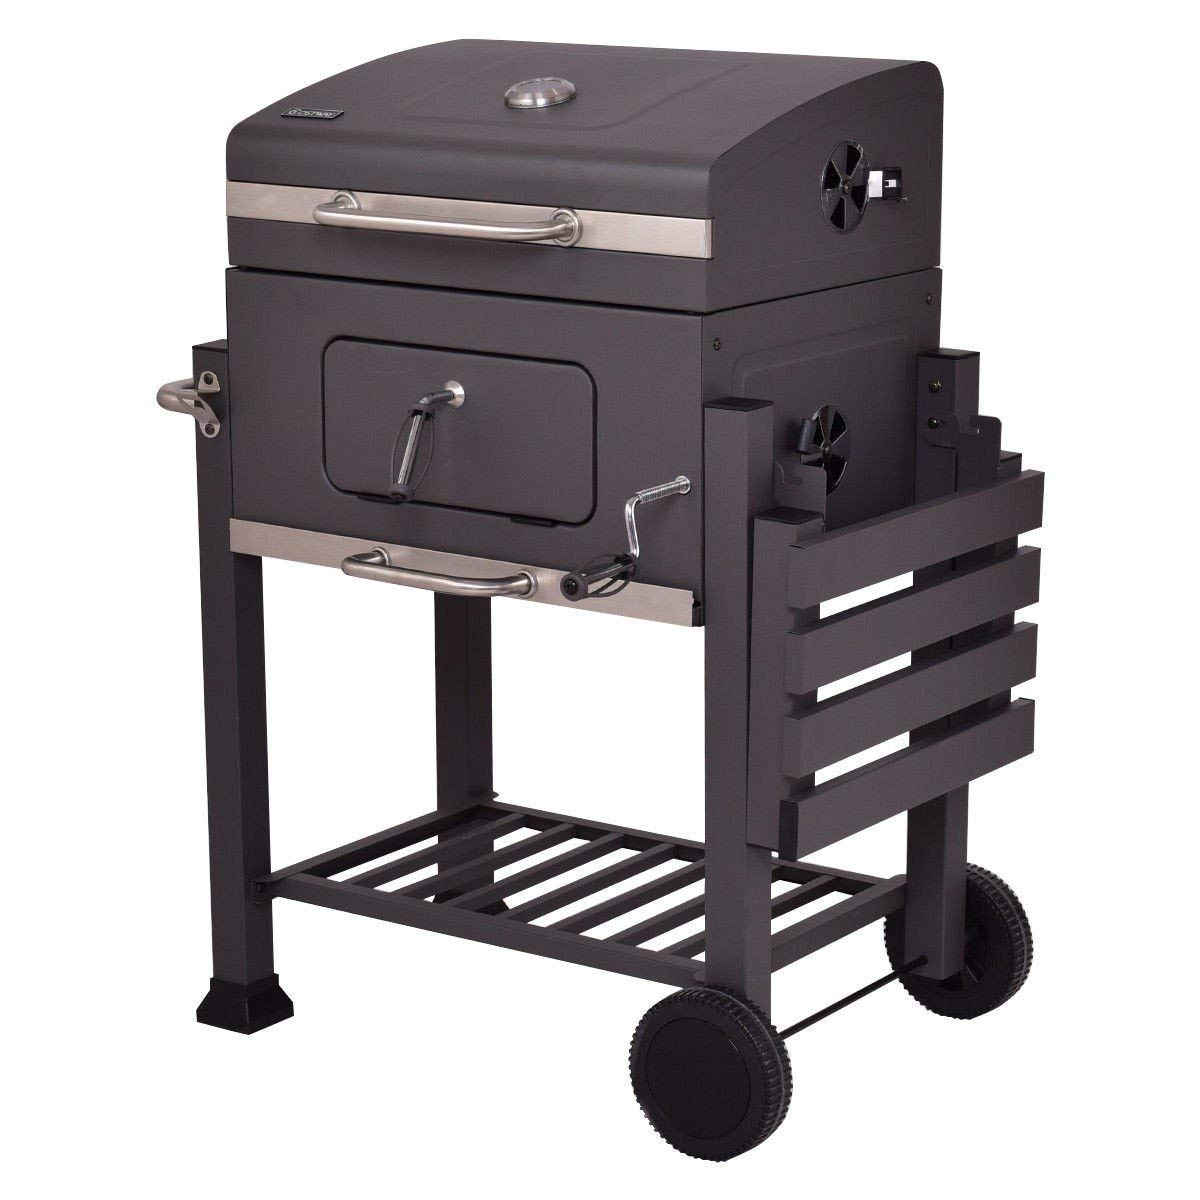 BeUniqueToday Charcoal Grill Outdoor Patio Barbecue BBQ Grill, Black Charcoal Grill Outdoor Patio Barbecue BBQ Grill with 4 Tool Hooks, Foldable Side Shelf Charcoal Grill Outdoor Patio Barbecue Grill